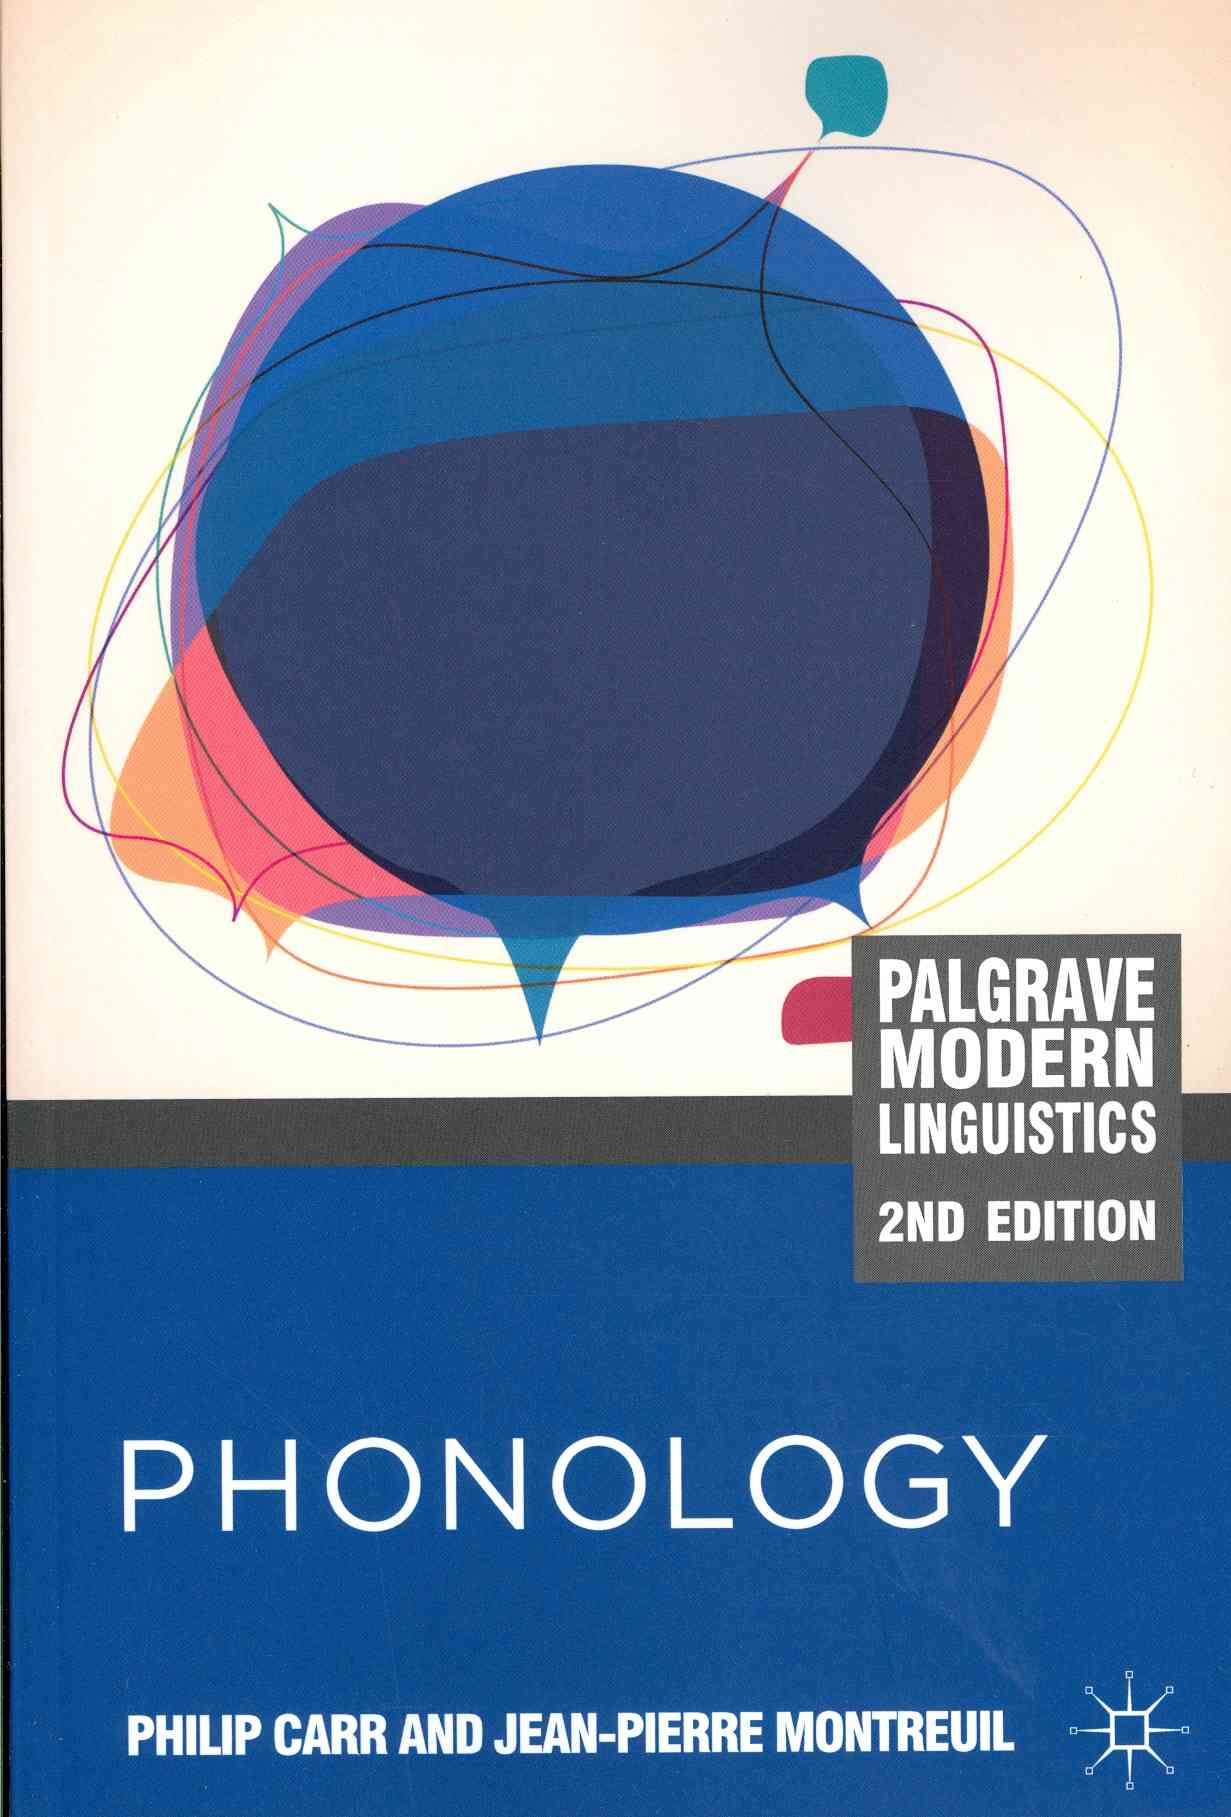 Phonology By Carr, Philip/ Montreuil, Jean-pierre